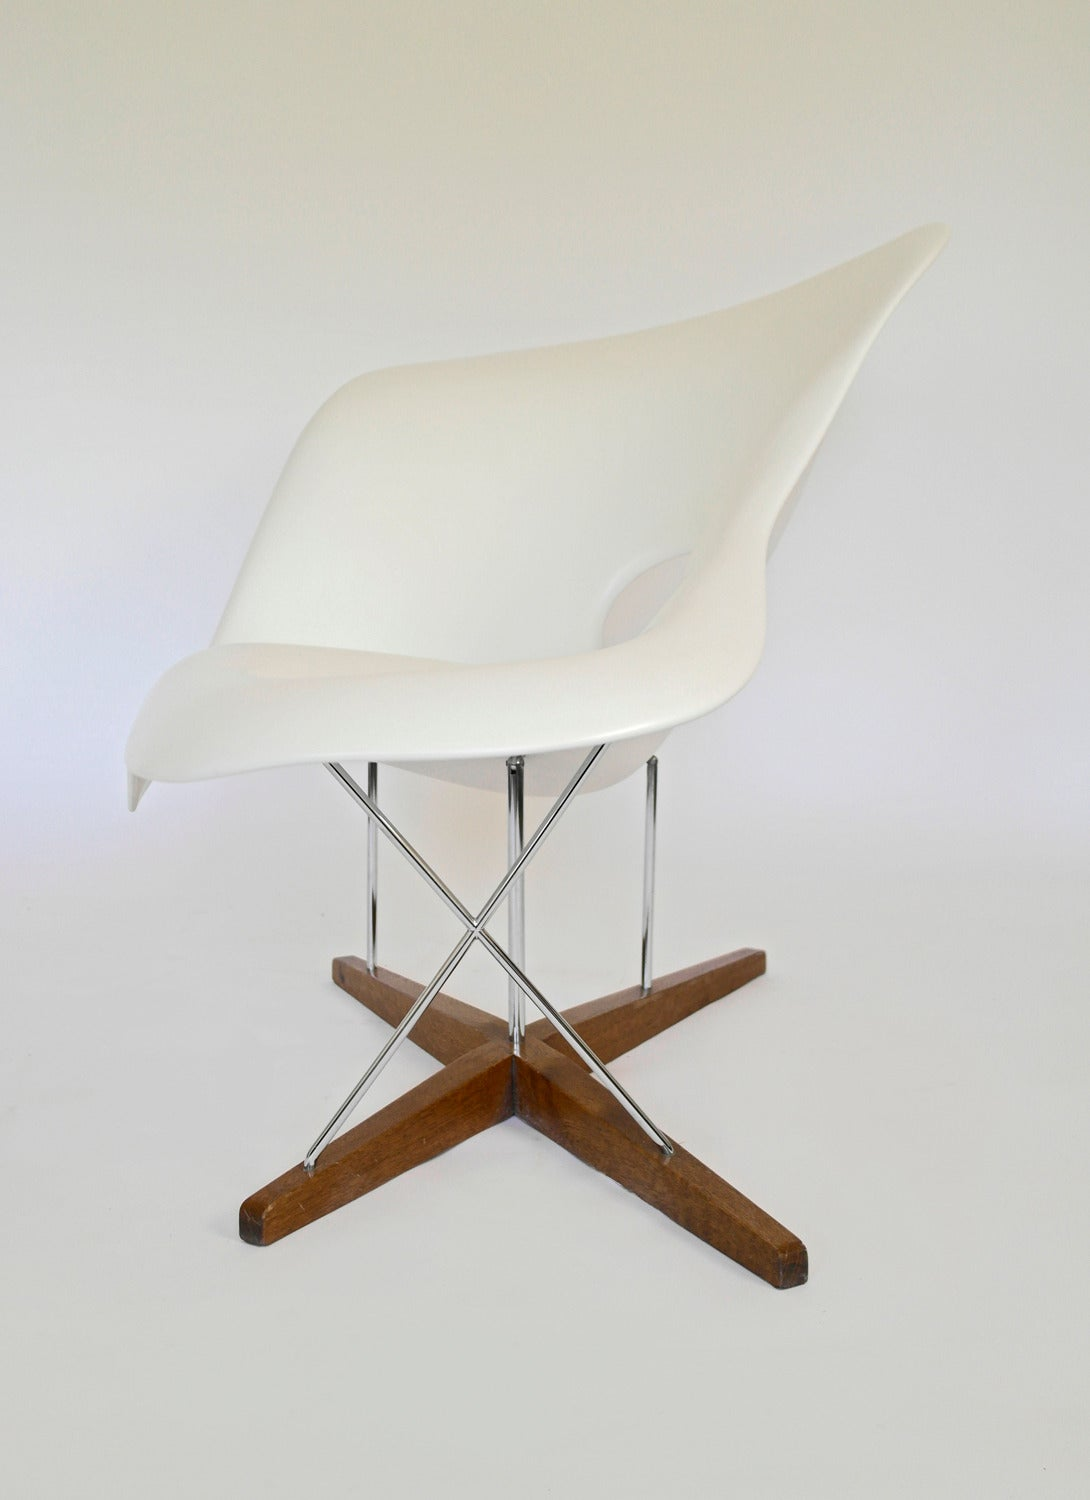 Vitra edition la chaise by charles and ray eames at 1stdibs for Eames chaise